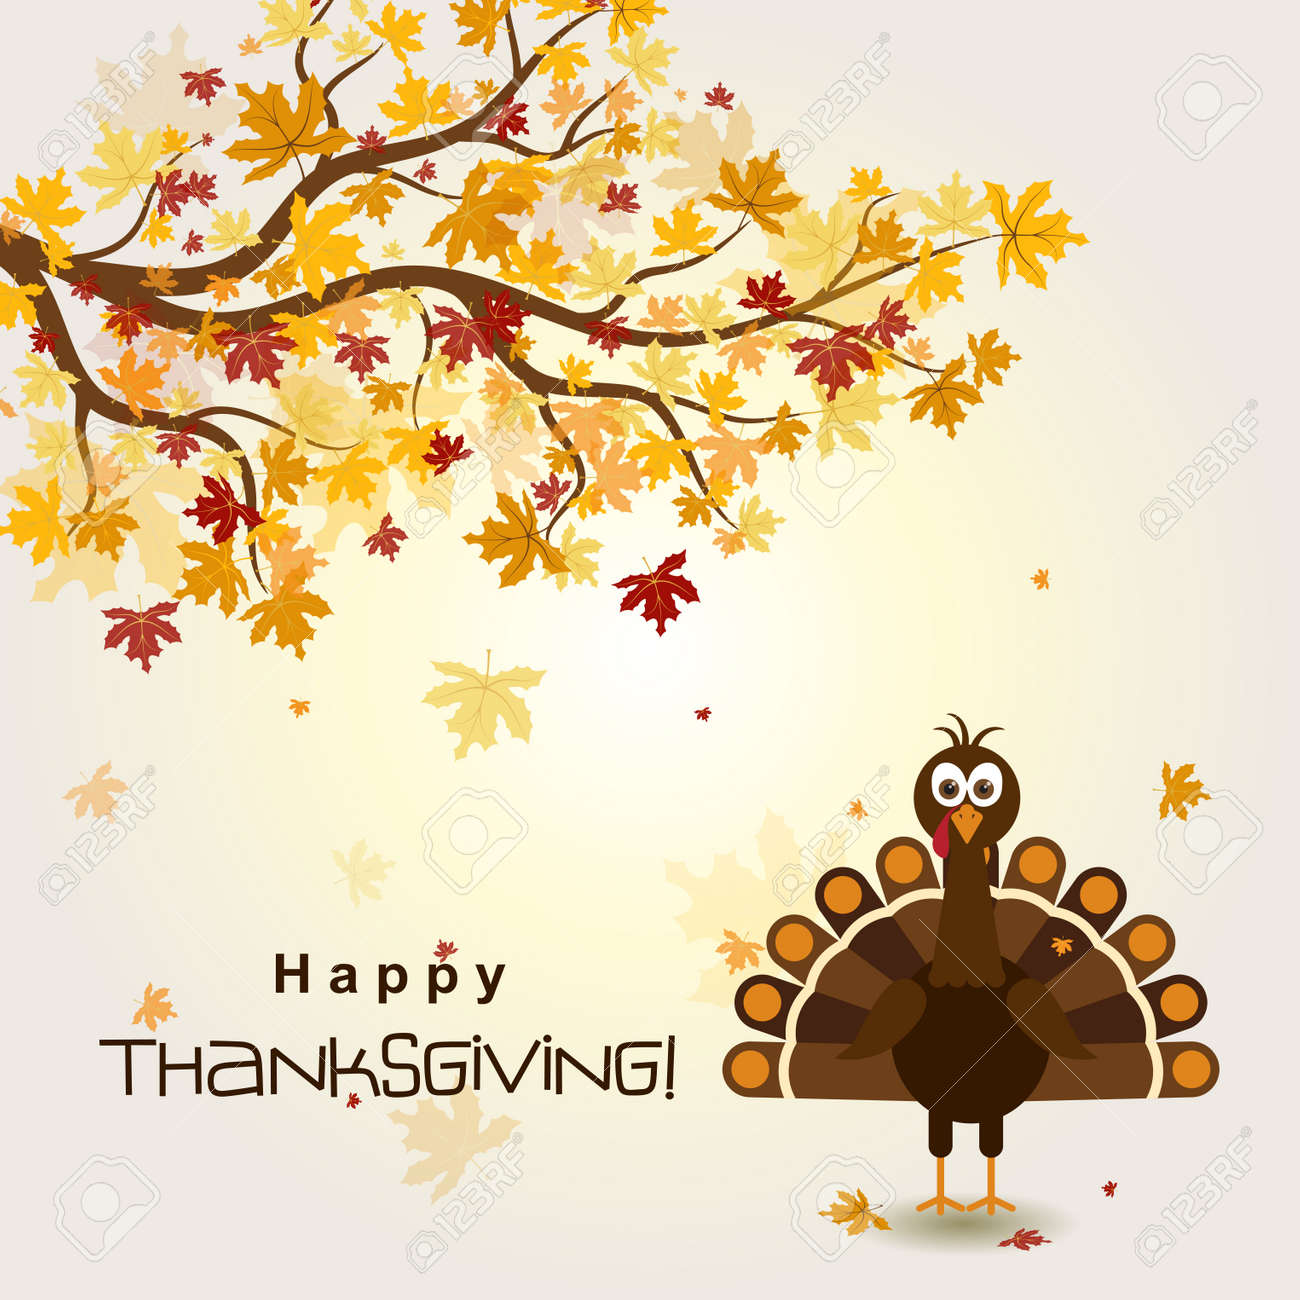 Template greeting card with a happy Thanksgiving turkey, vector illustration - 43976464